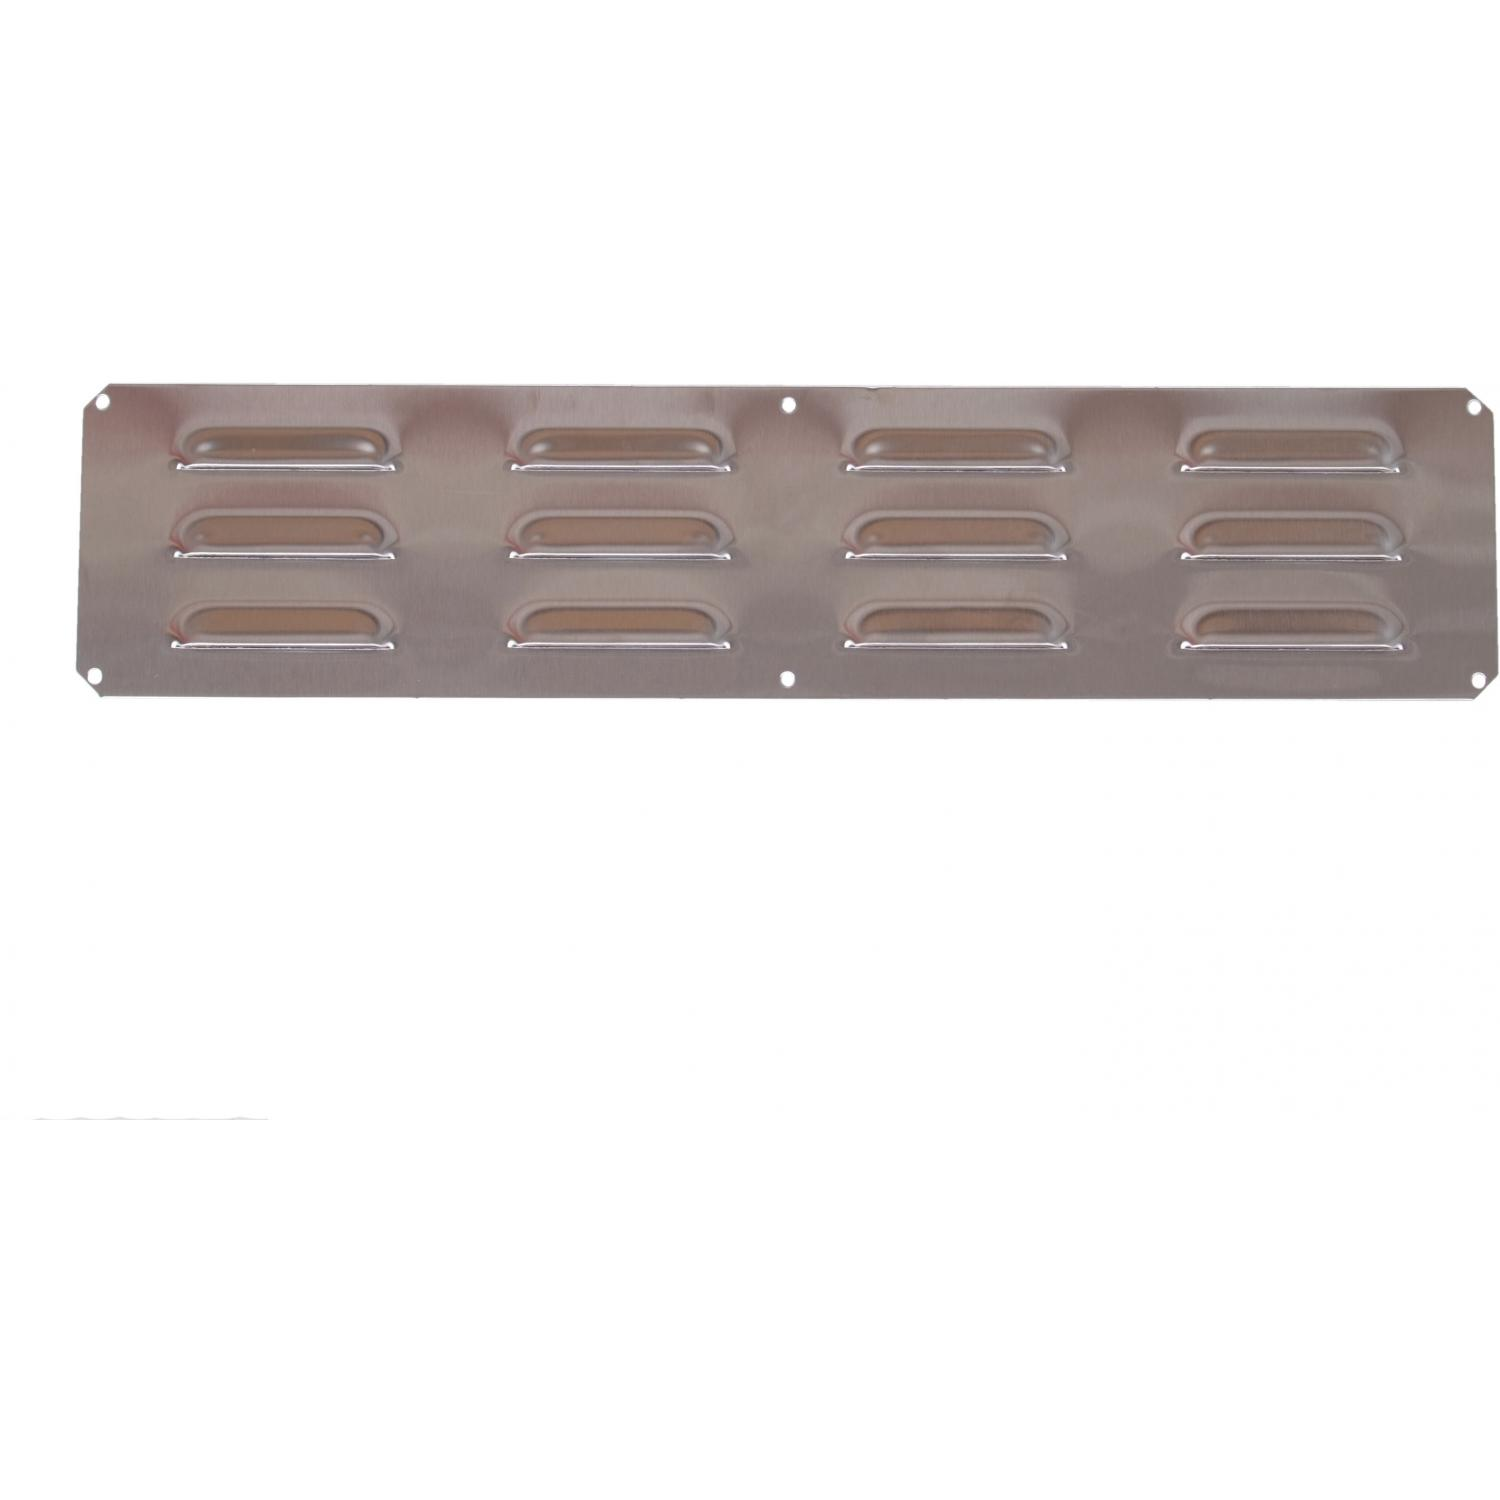 BBQ Guys 4 X 18 Stainless Steel Island Vent